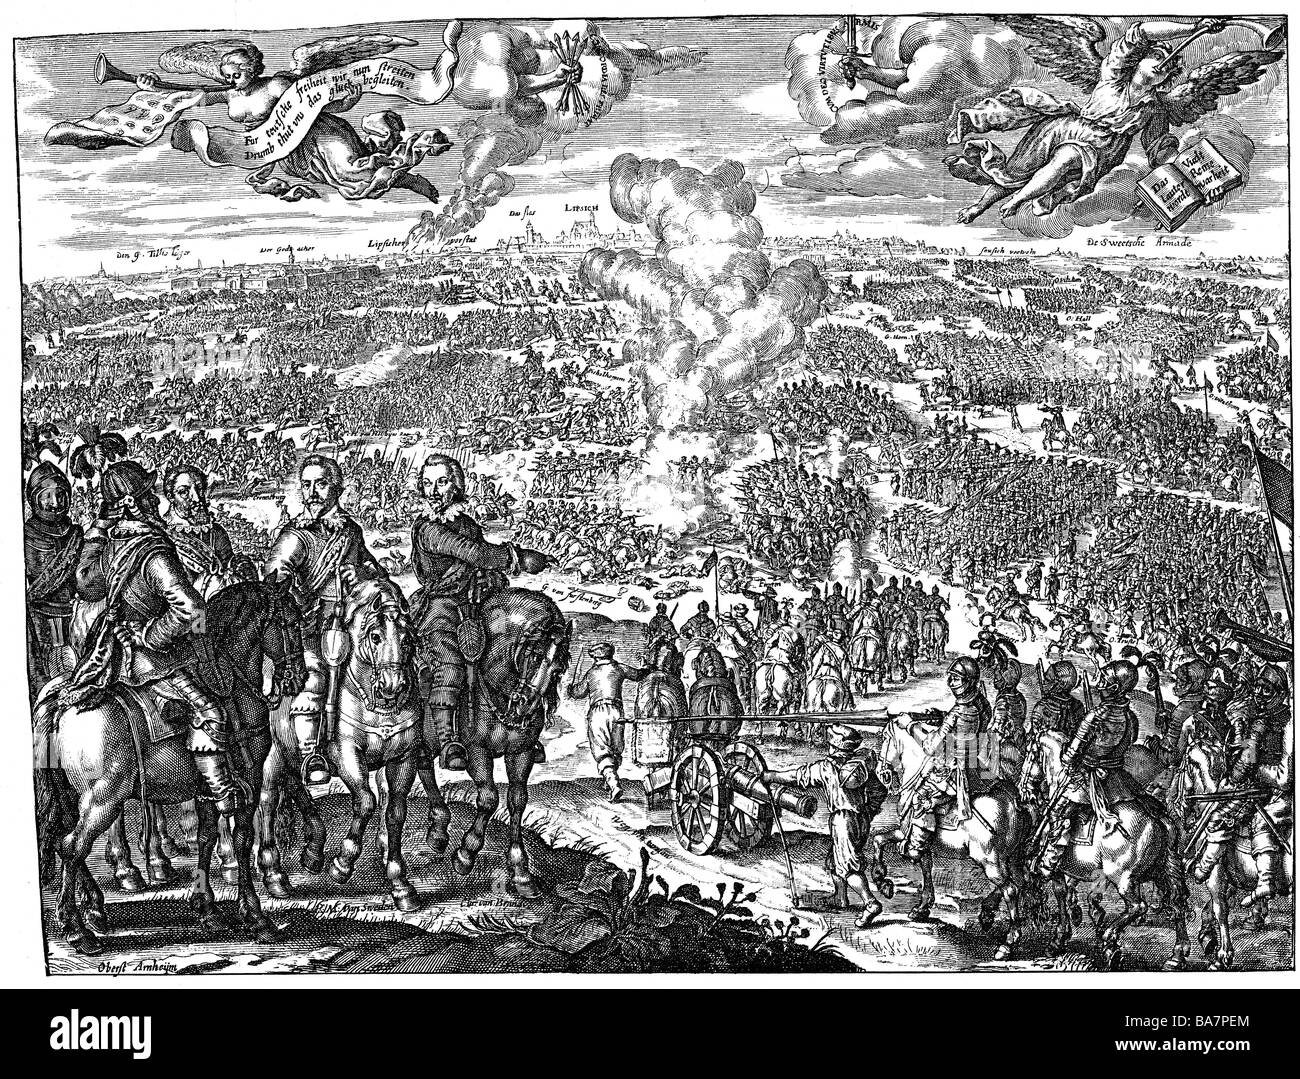 events, Thirty Years War 1618 - 1648, Swedish War, 1st Battle of Breitenfeld, 17.9.1631, copper engraving, 1631, - Stock Image